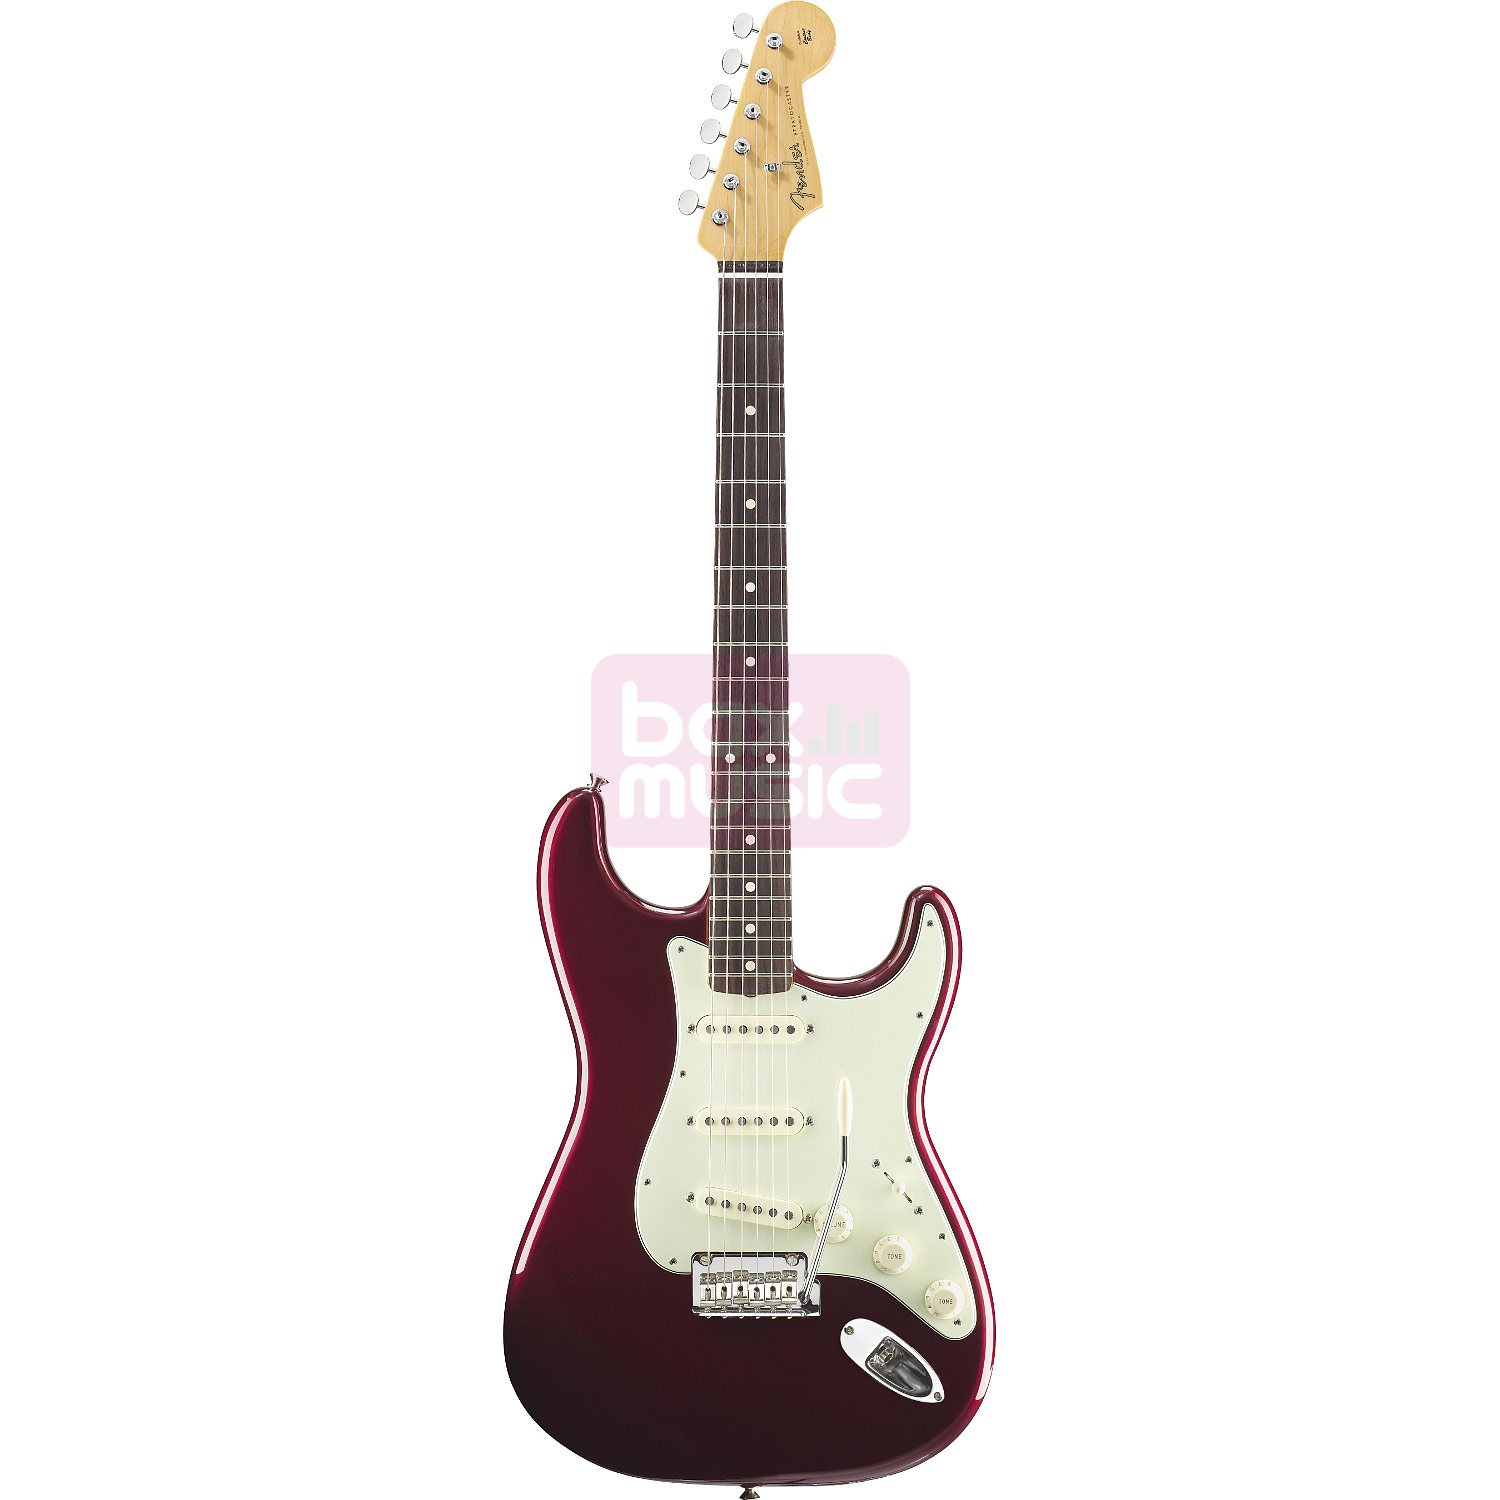 Fender Classic Player 60s Stratocaster Candy Apple Red RW